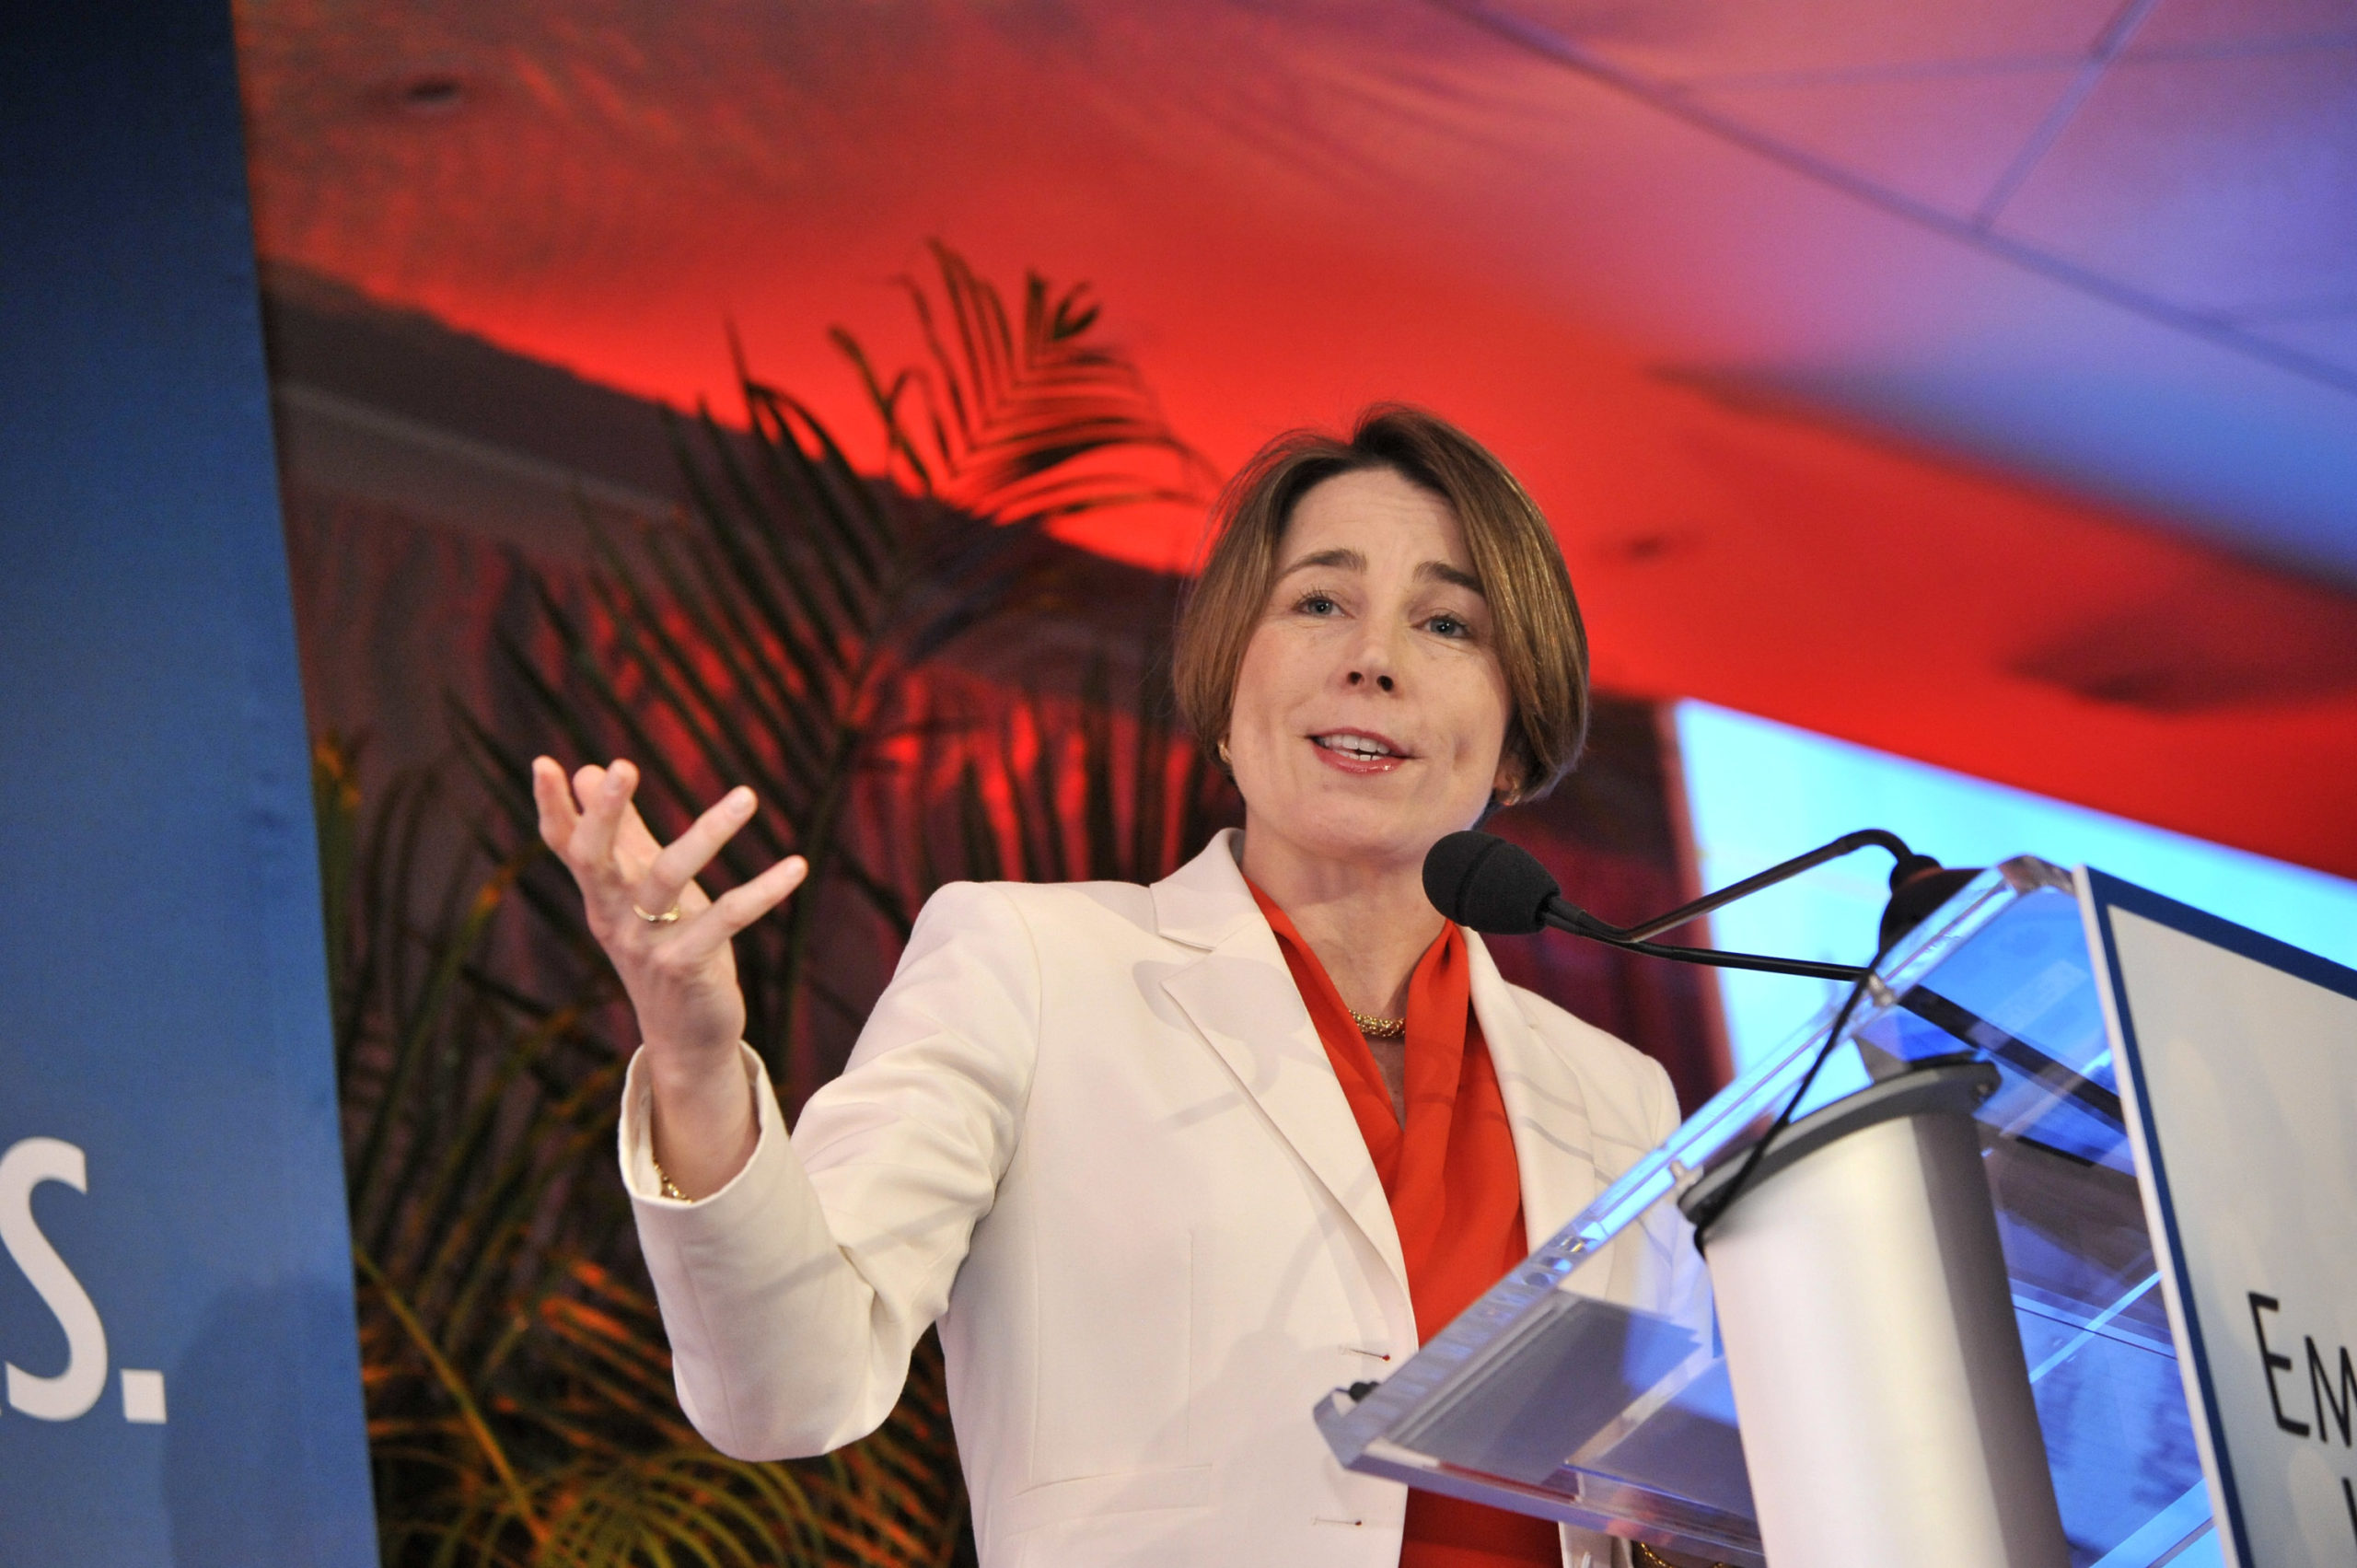 Attorney General Maura Healey speaks at a 2015 gala in Washington, D.C. (Kris Connor/Getty Images for EMILY's List)